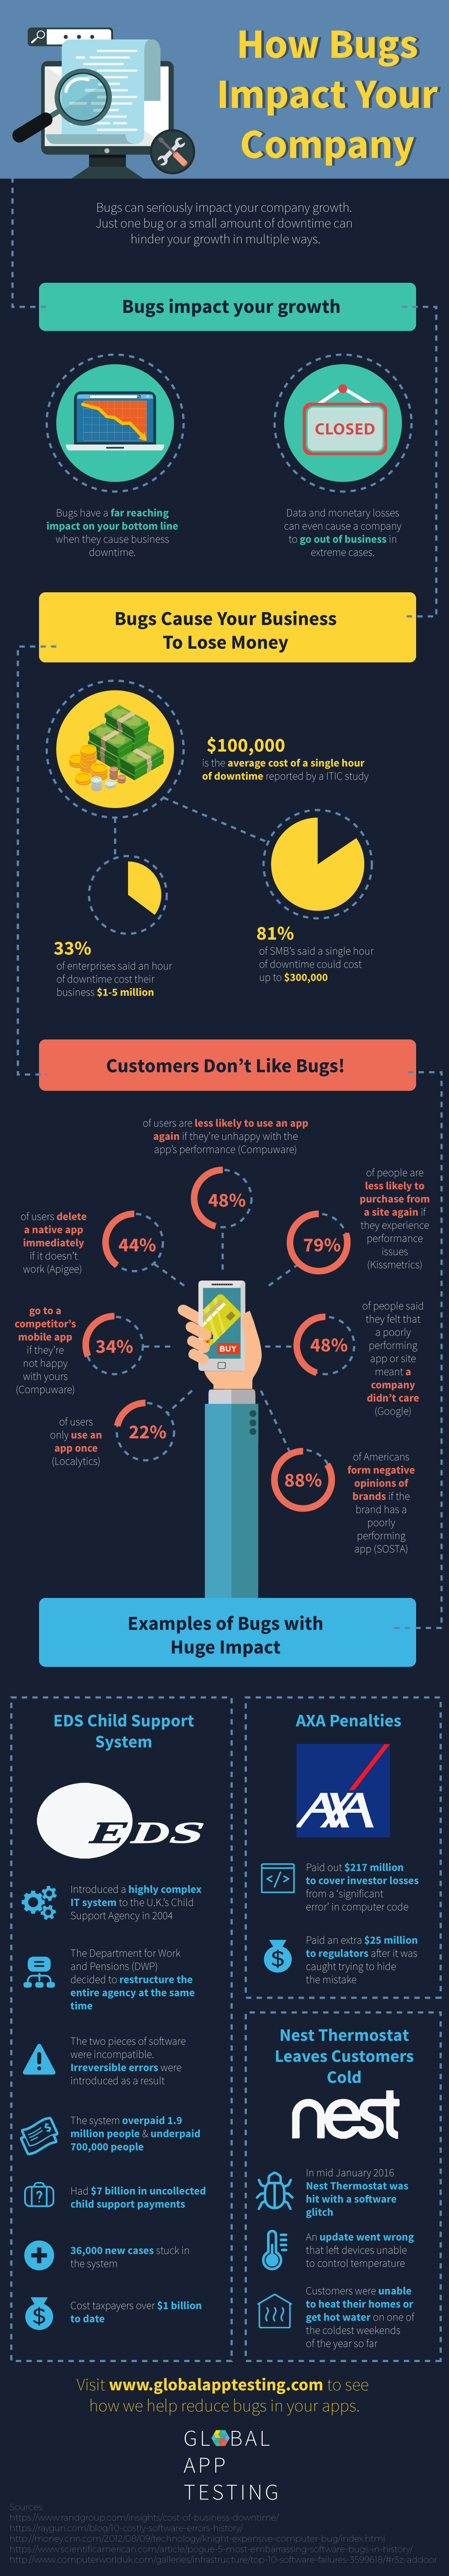 infographic how bugs impact your company